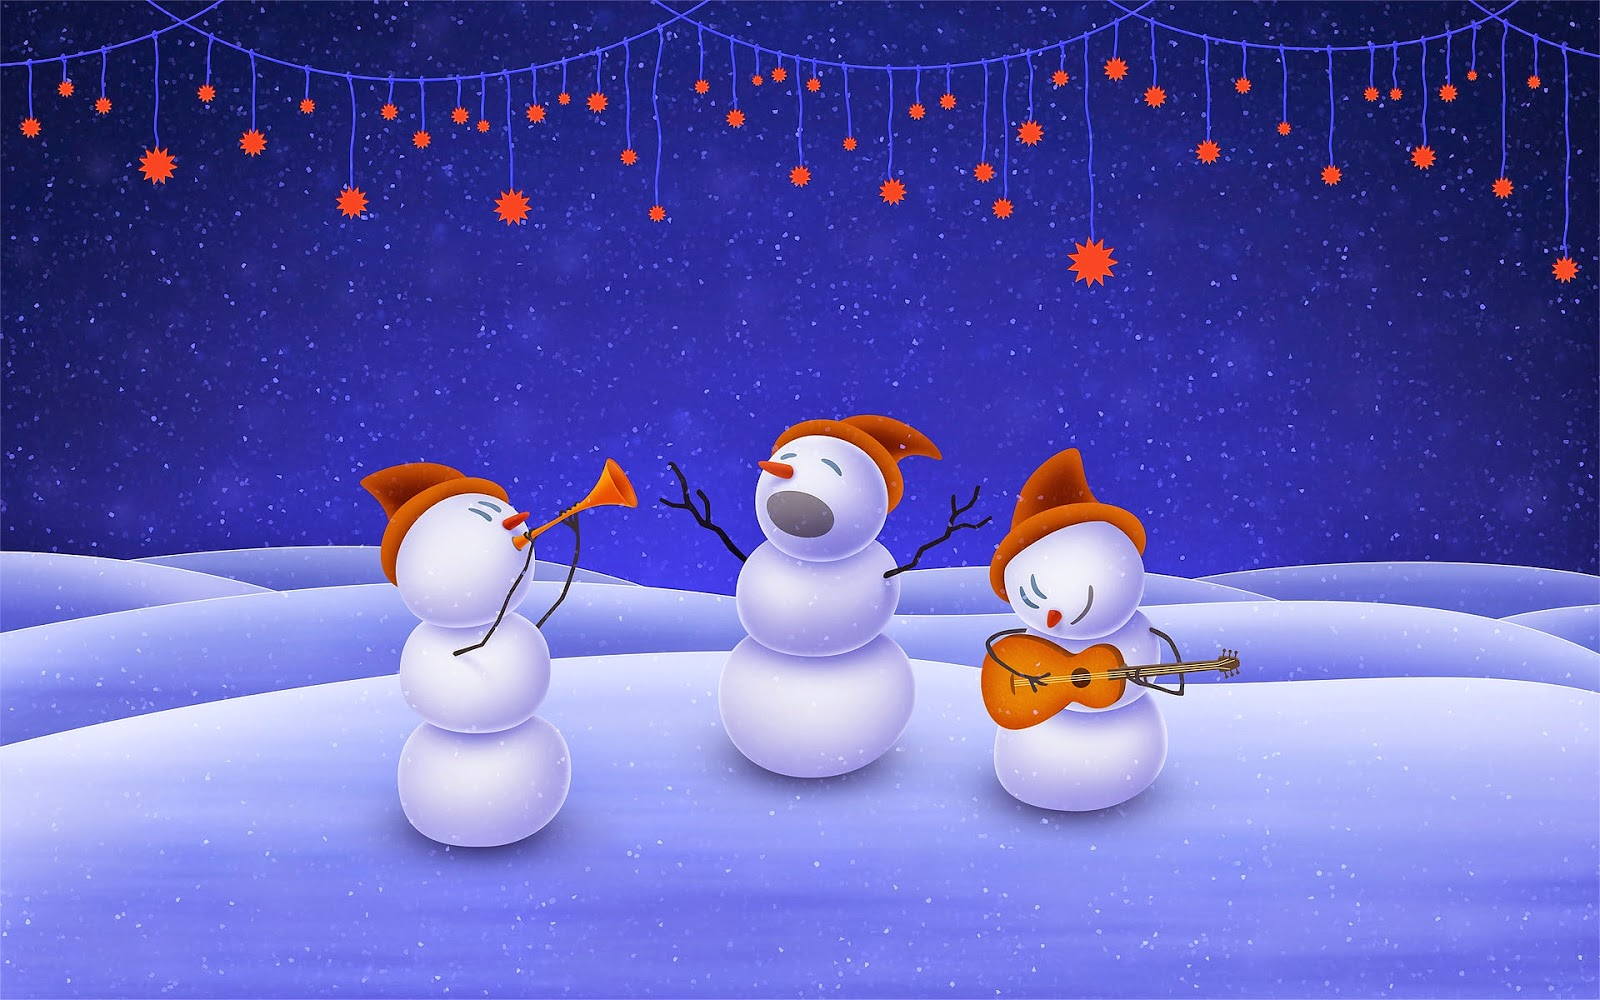 Snowman-music-band-Christmas-troop-wallpaper-image-for-powerpoint-PPT-word-document.jpg